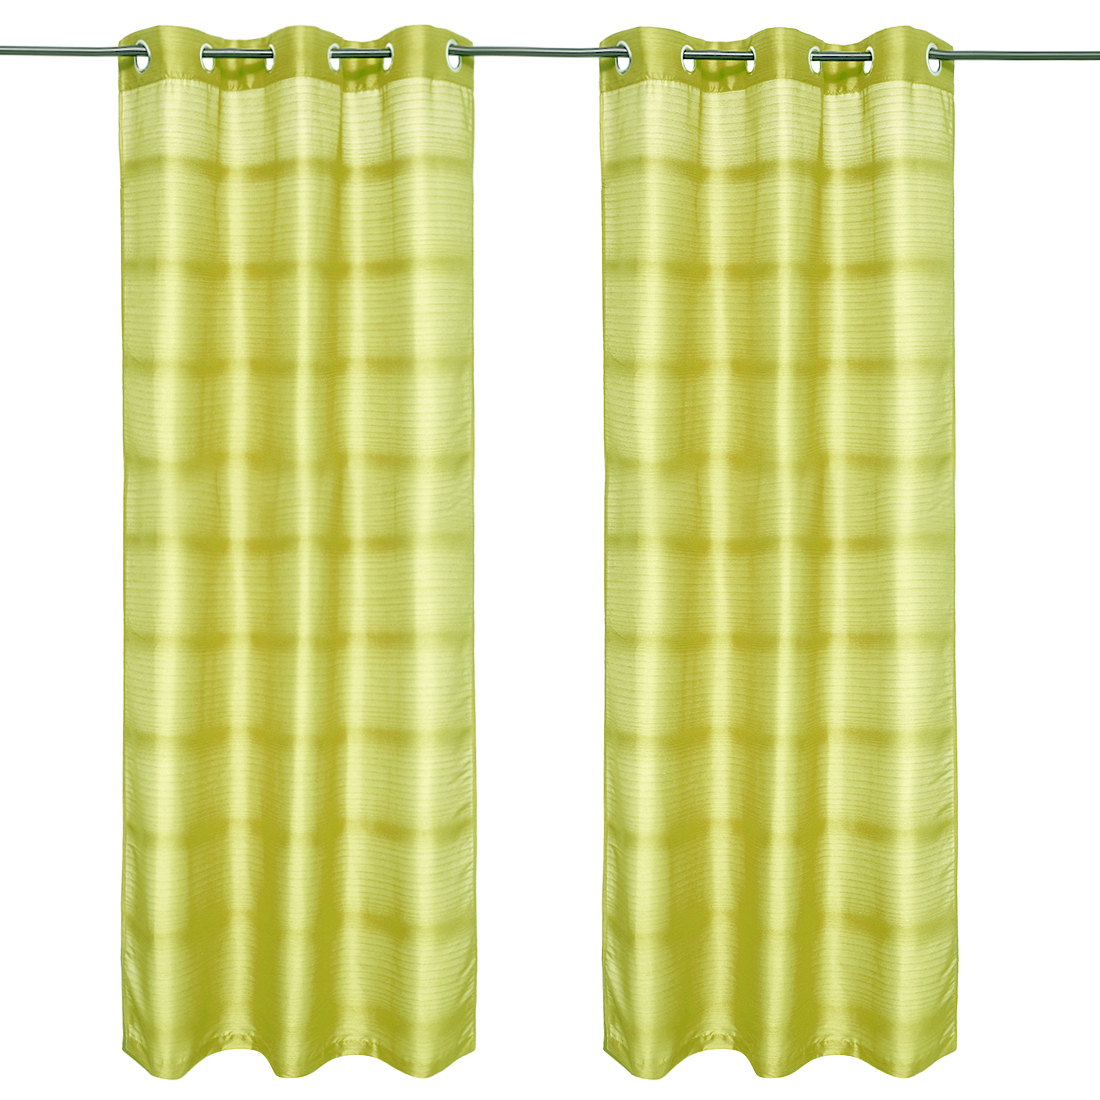 Fiesta Solid set of 2 Polyester Window Curtains in Citron Colour by Living Essence